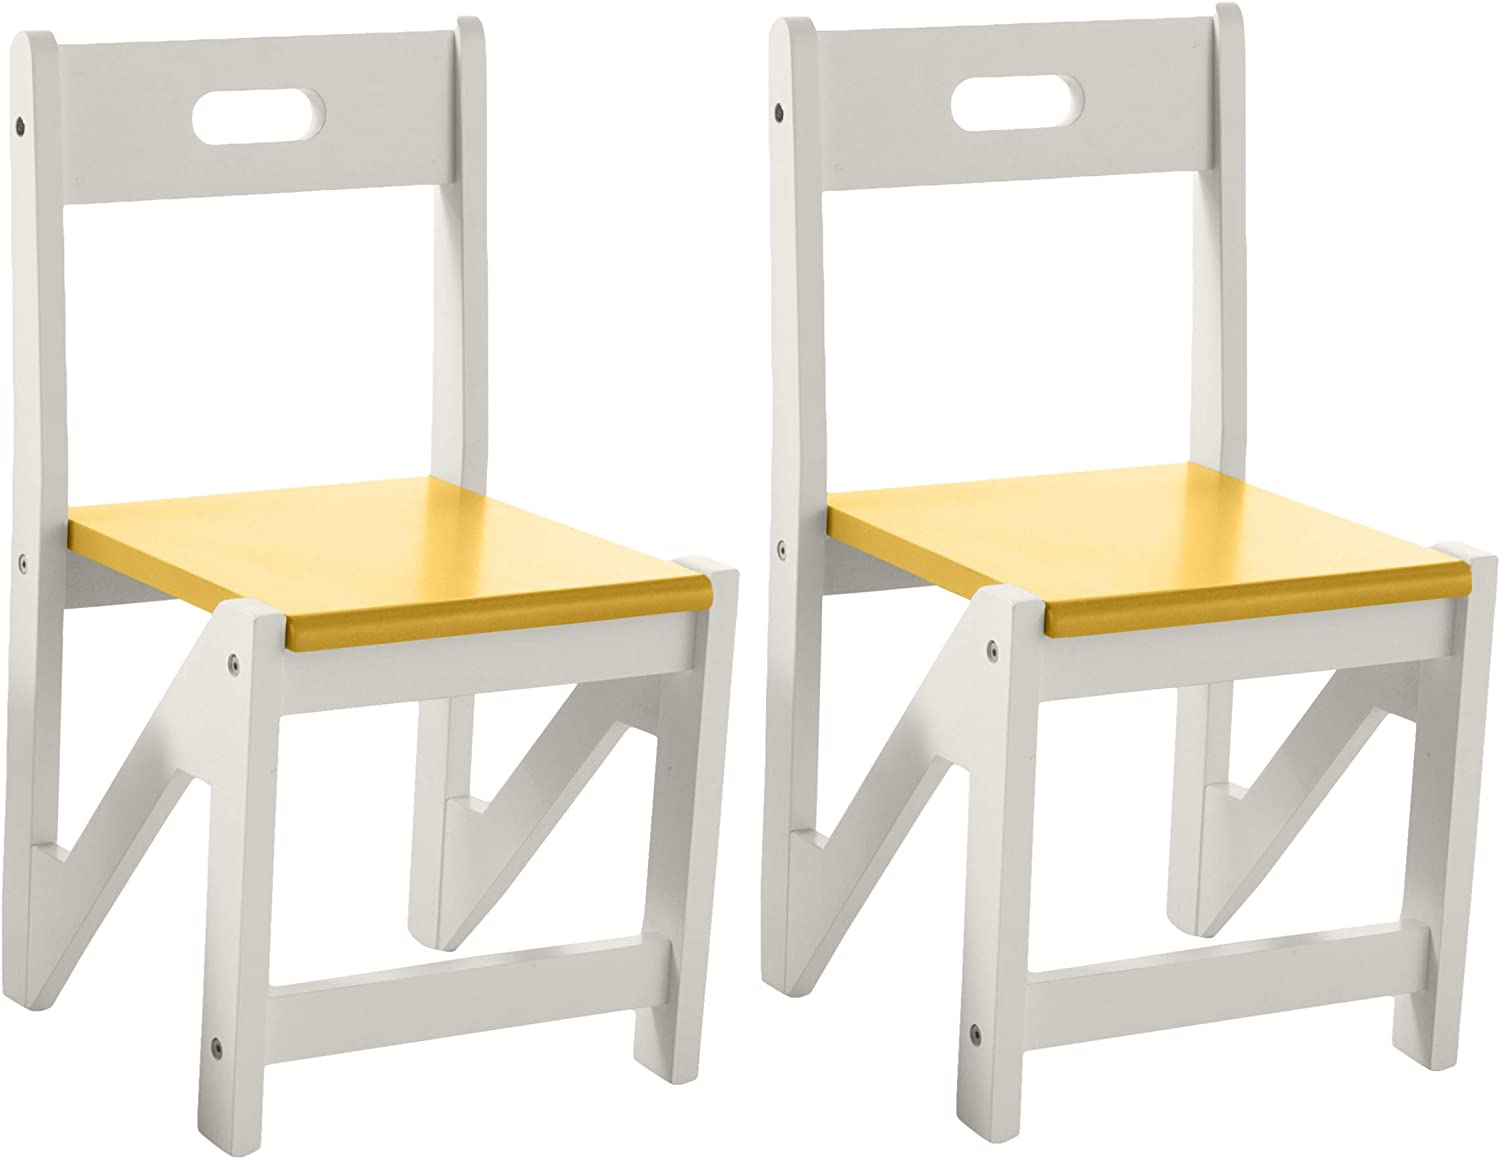 Amazon Com Lipper International Kids Zigzag Stacking Chairs For Play Or Learning 12 5 W X 12 5 D X 23 75 H Set Of 2 Yellow White Toys Games